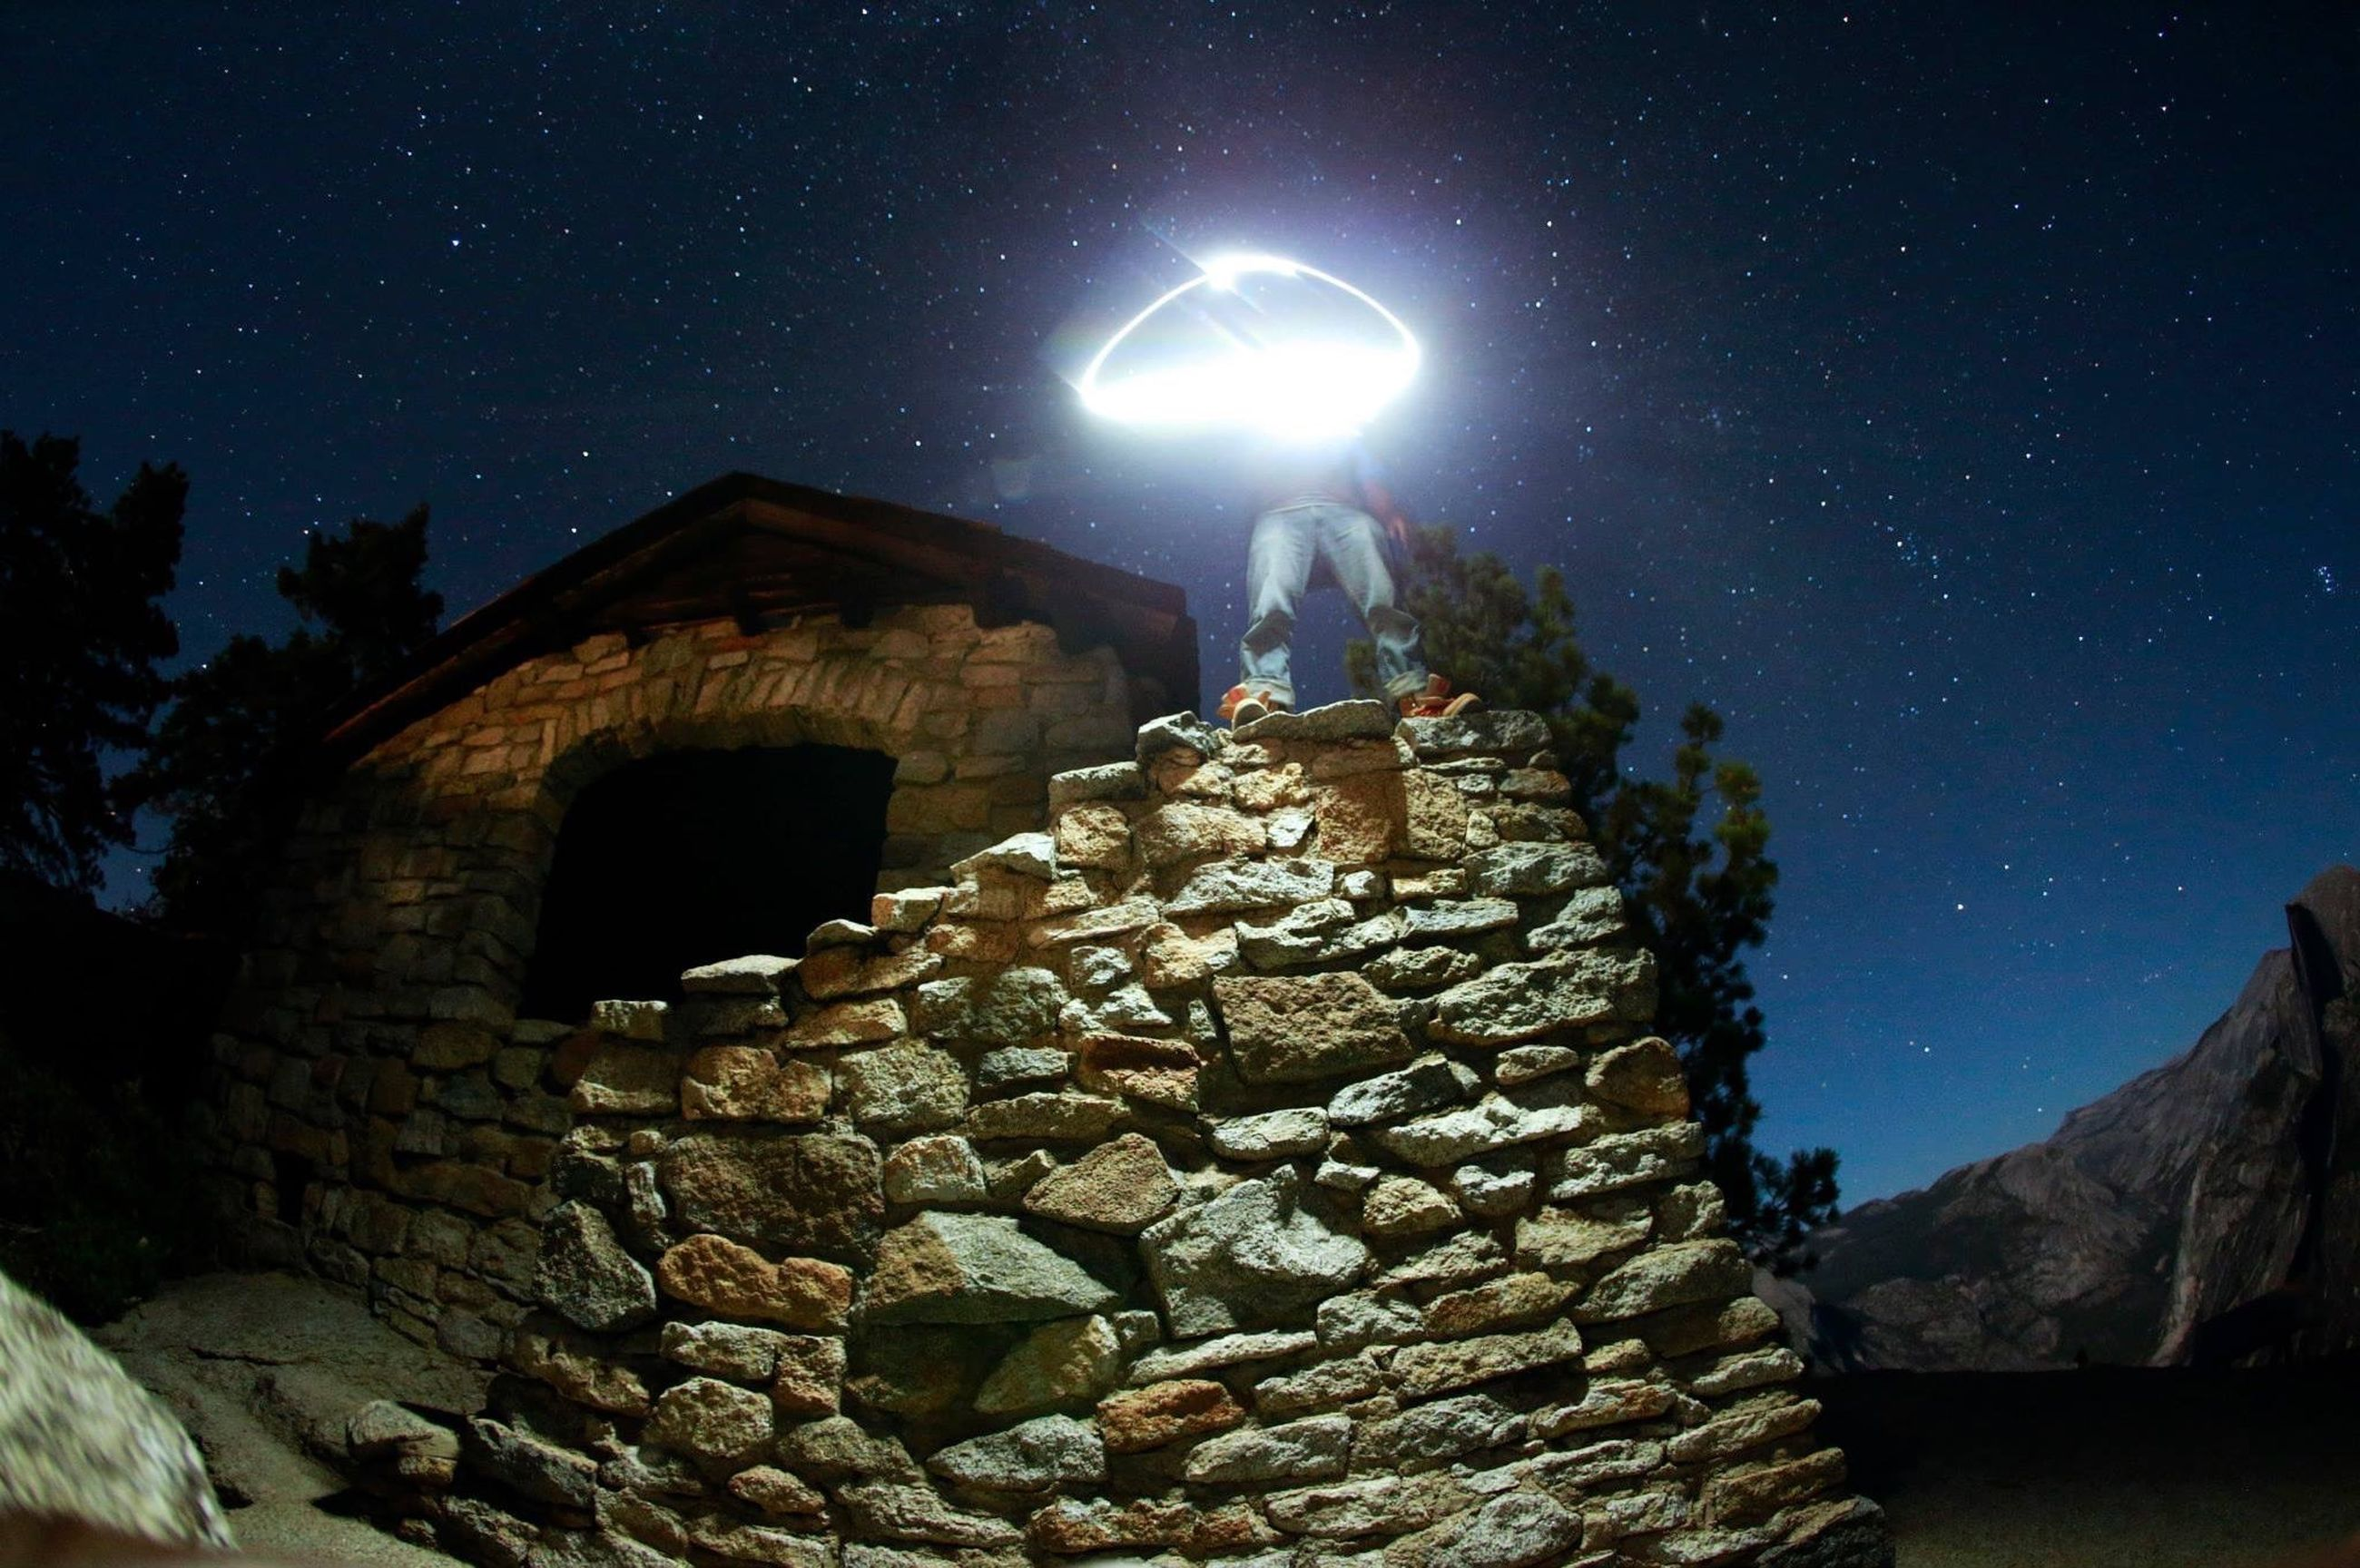 night, built structure, architecture, low angle view, sky, building exterior, history, stone wall, illuminated, old, old ruin, clear sky, ancient, the past, outdoors, rock - object, dark, arch, stone material, no people